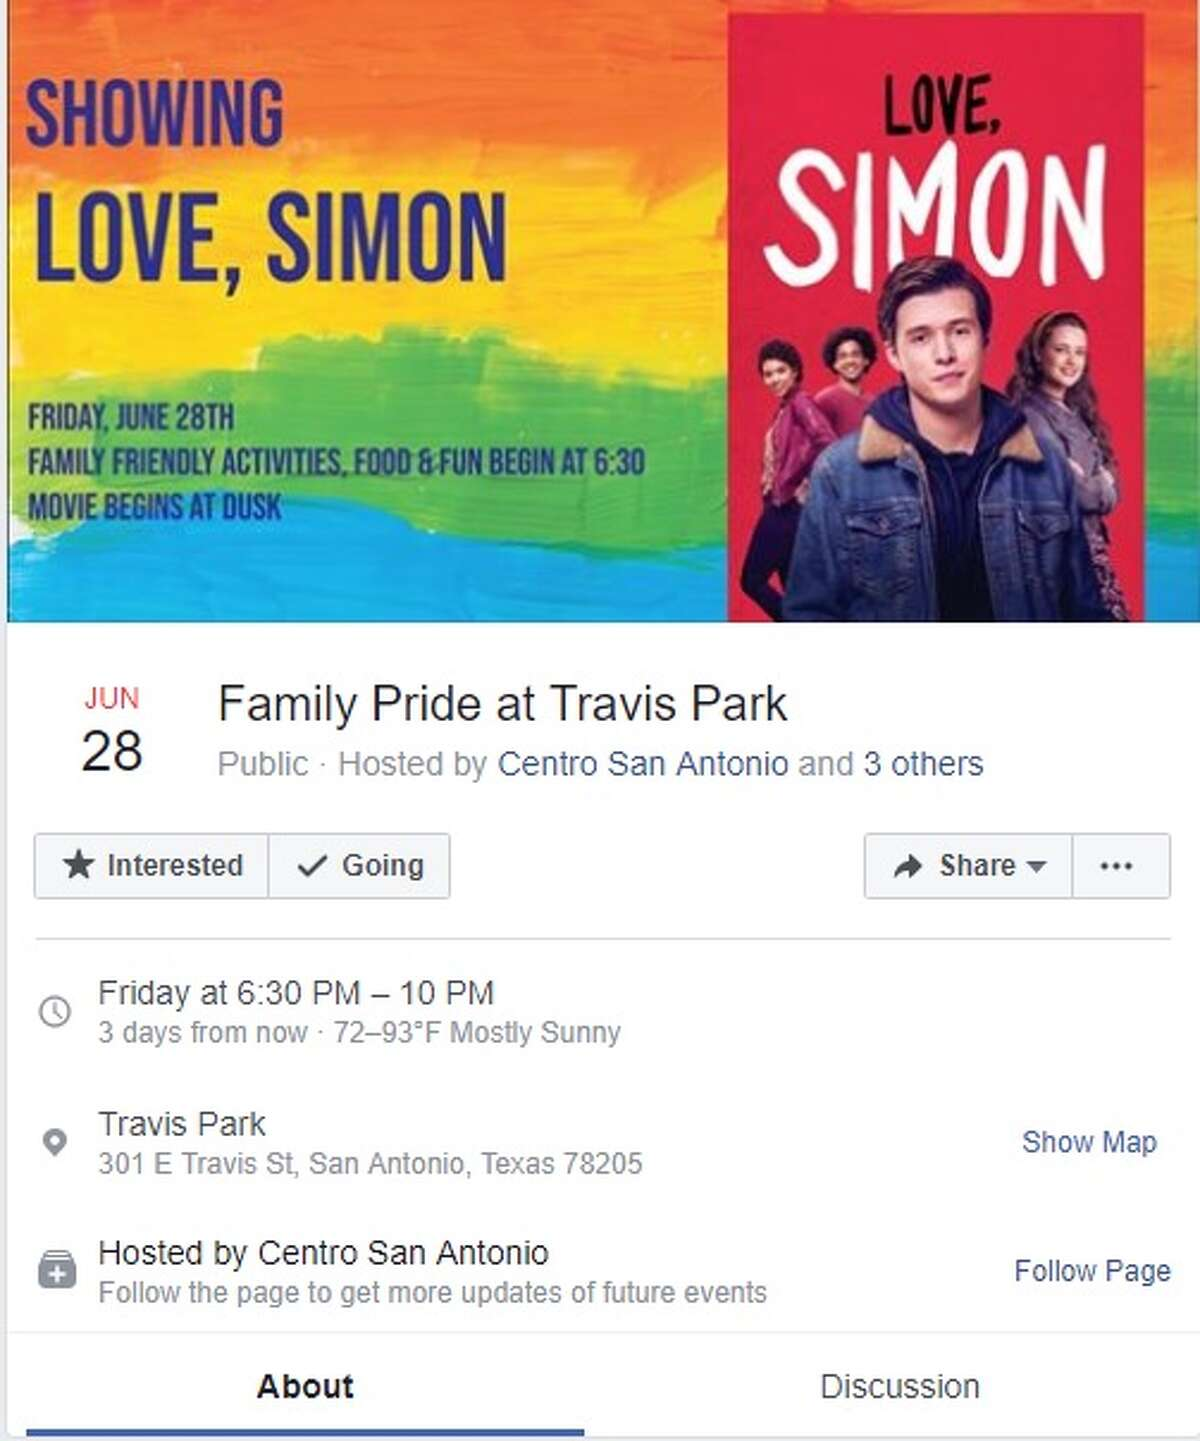 Family Pride at Travis Park is from 6:30 to 10 p.m. Friday, June 28 at Travis Park. Lawn games, screening of